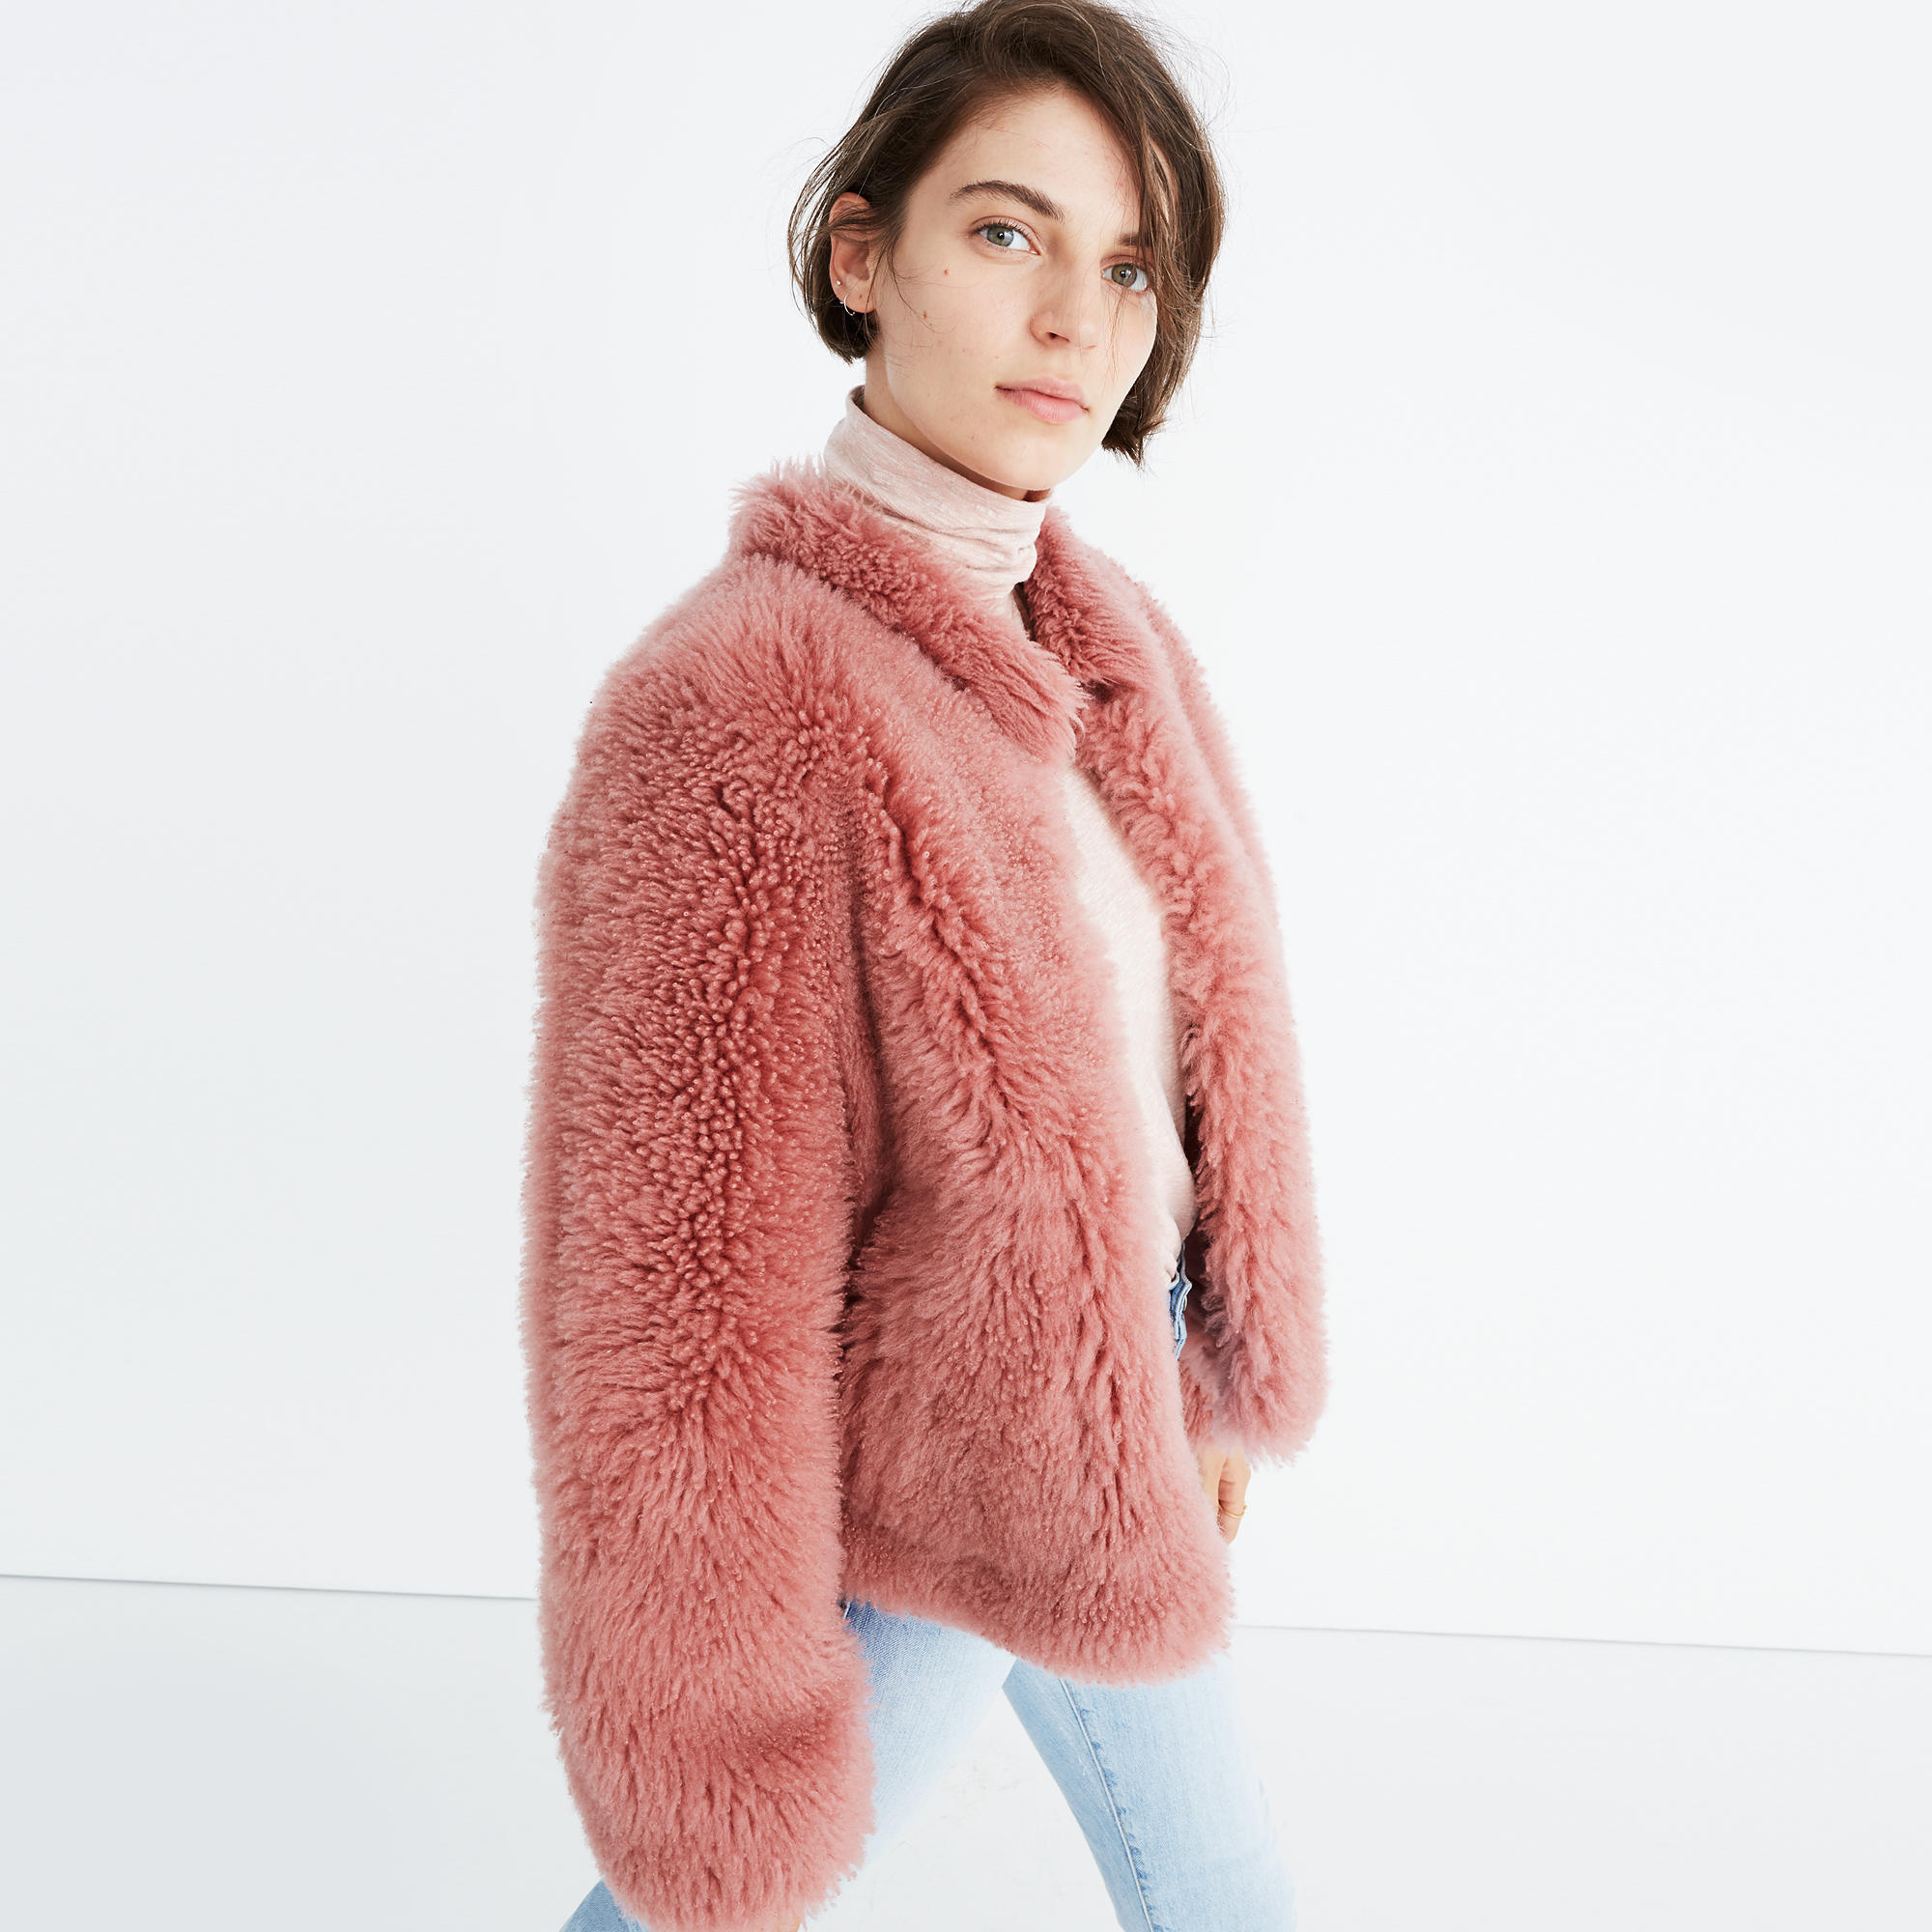 Pink Mongolian Shearling Jacket : leather jackets | Madewell